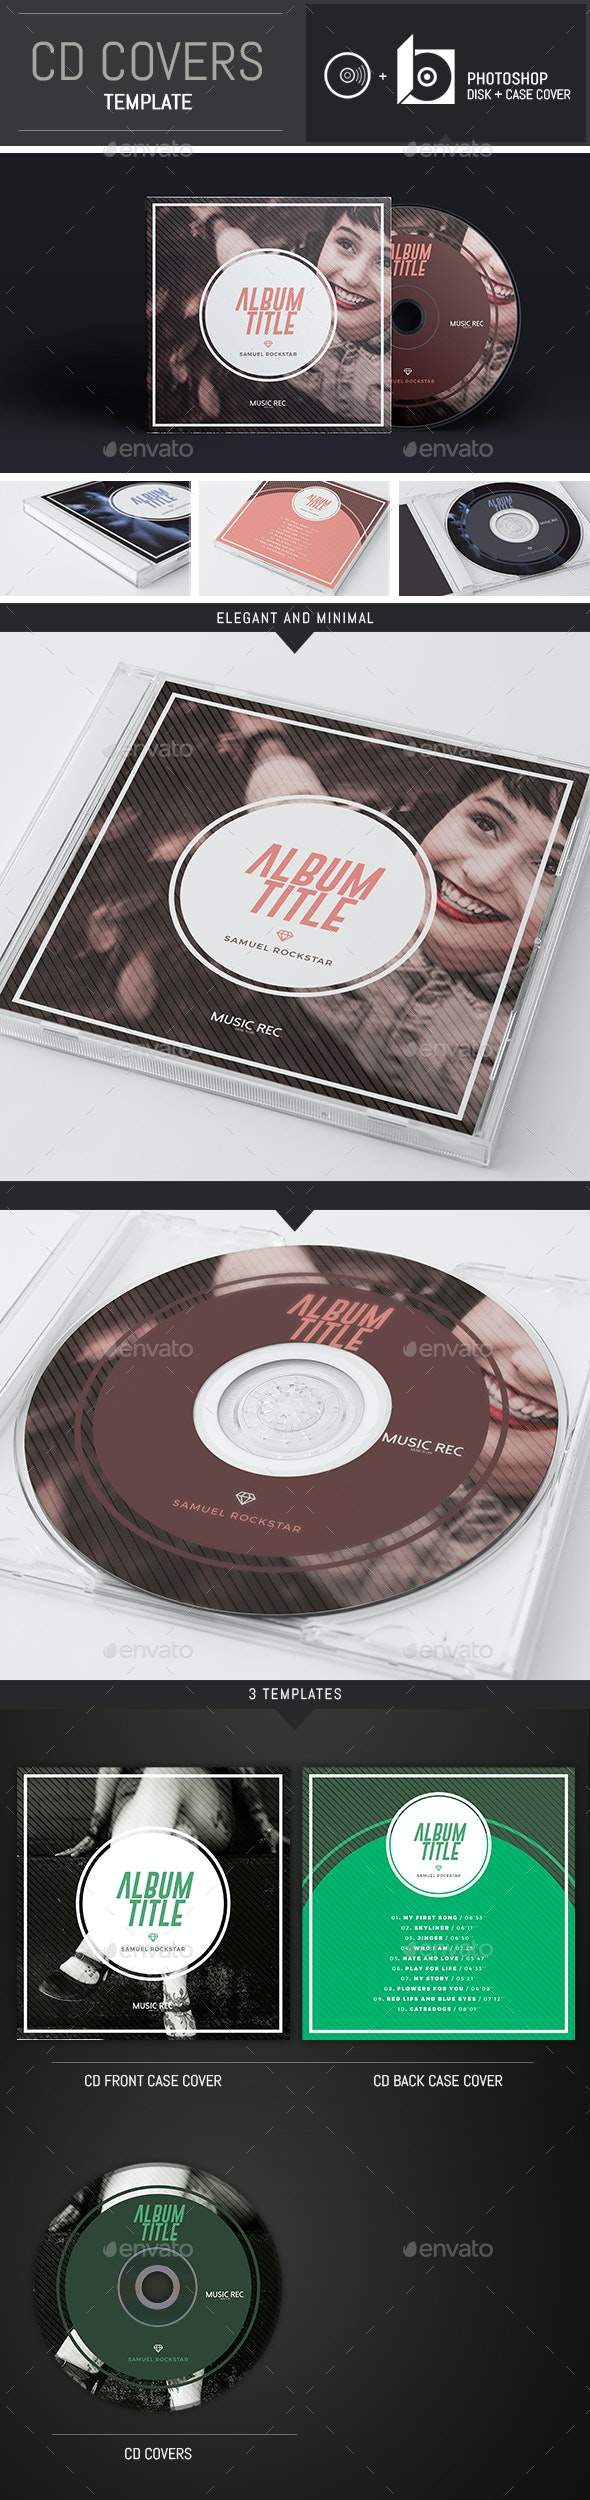 DJ / Musician / Band Abstract CD Cover Template - CD & DVD Artwork Print Templates